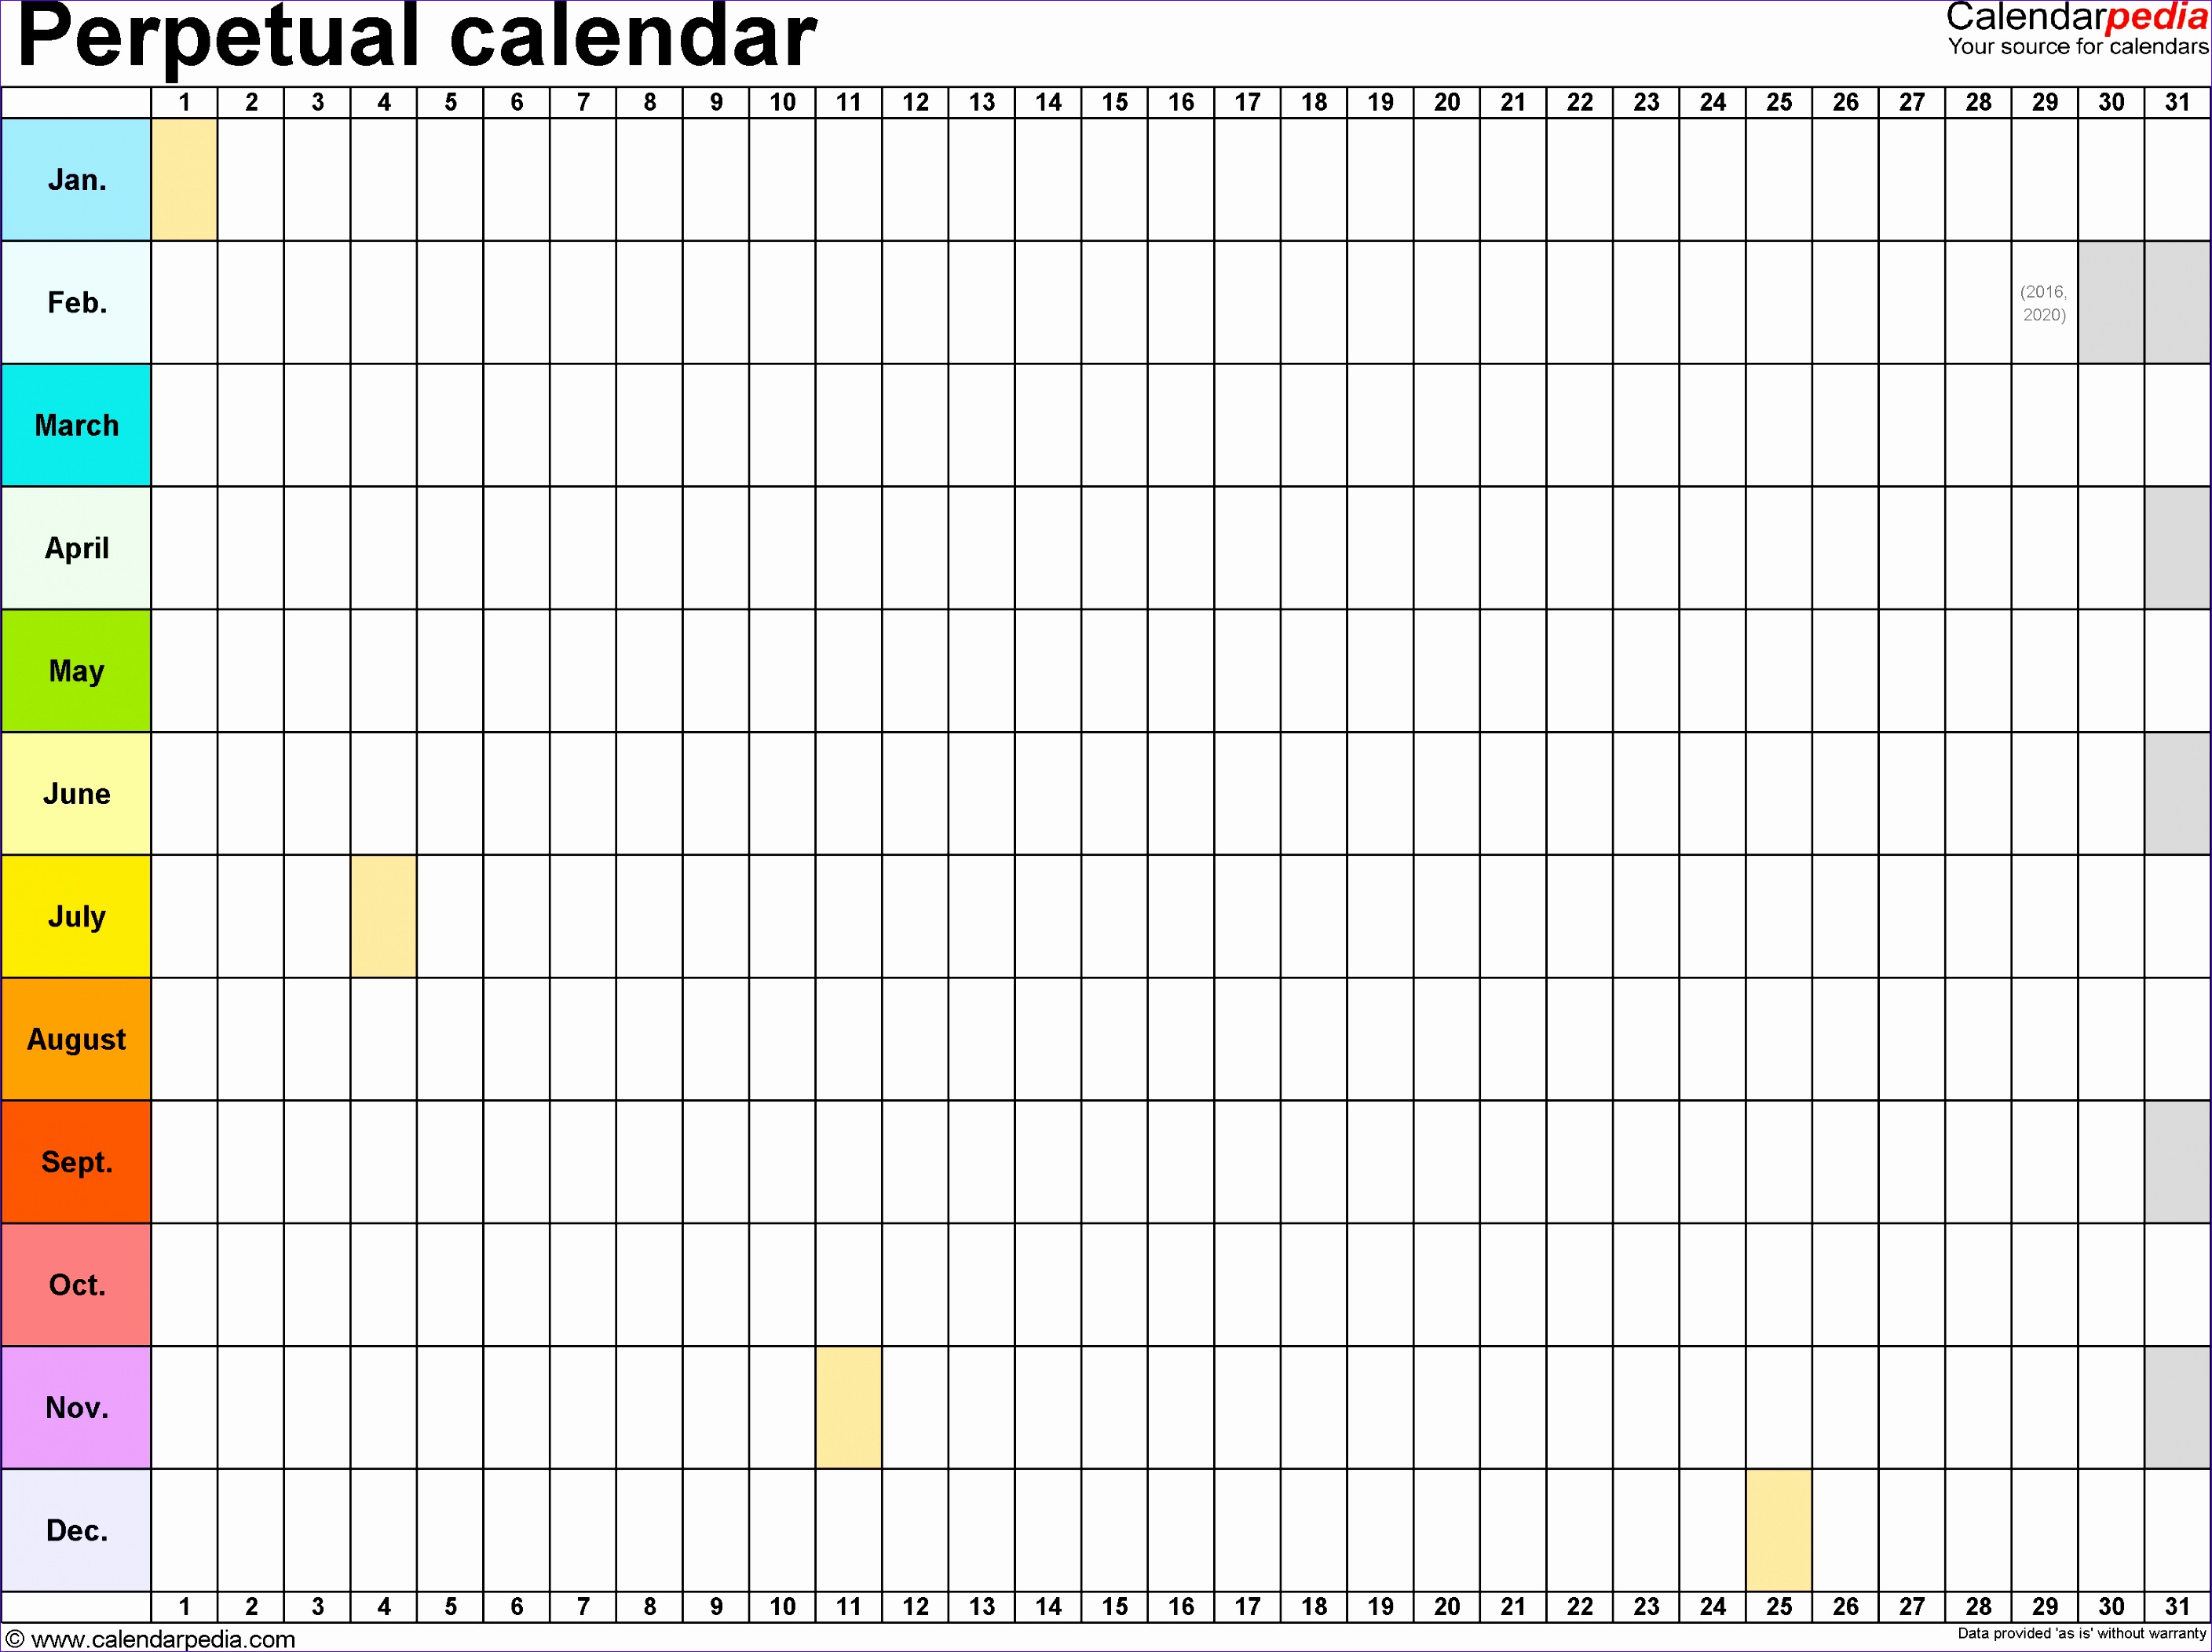 perpetual calendars 7 free printable excel templates pictures 4 28172104